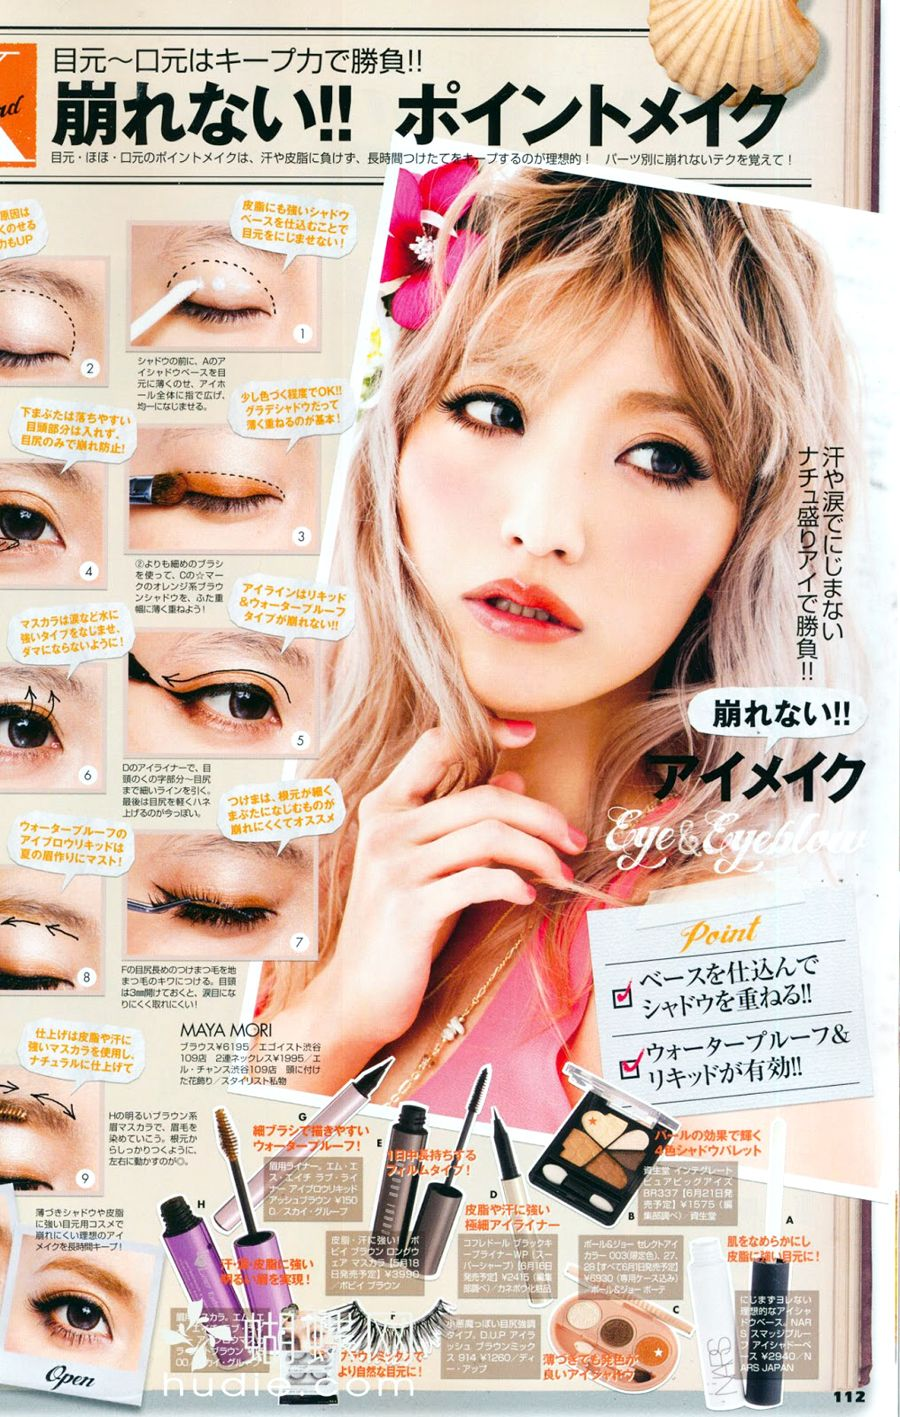 Pin by Candy kawaii Style on Maquillaje japones, chino y